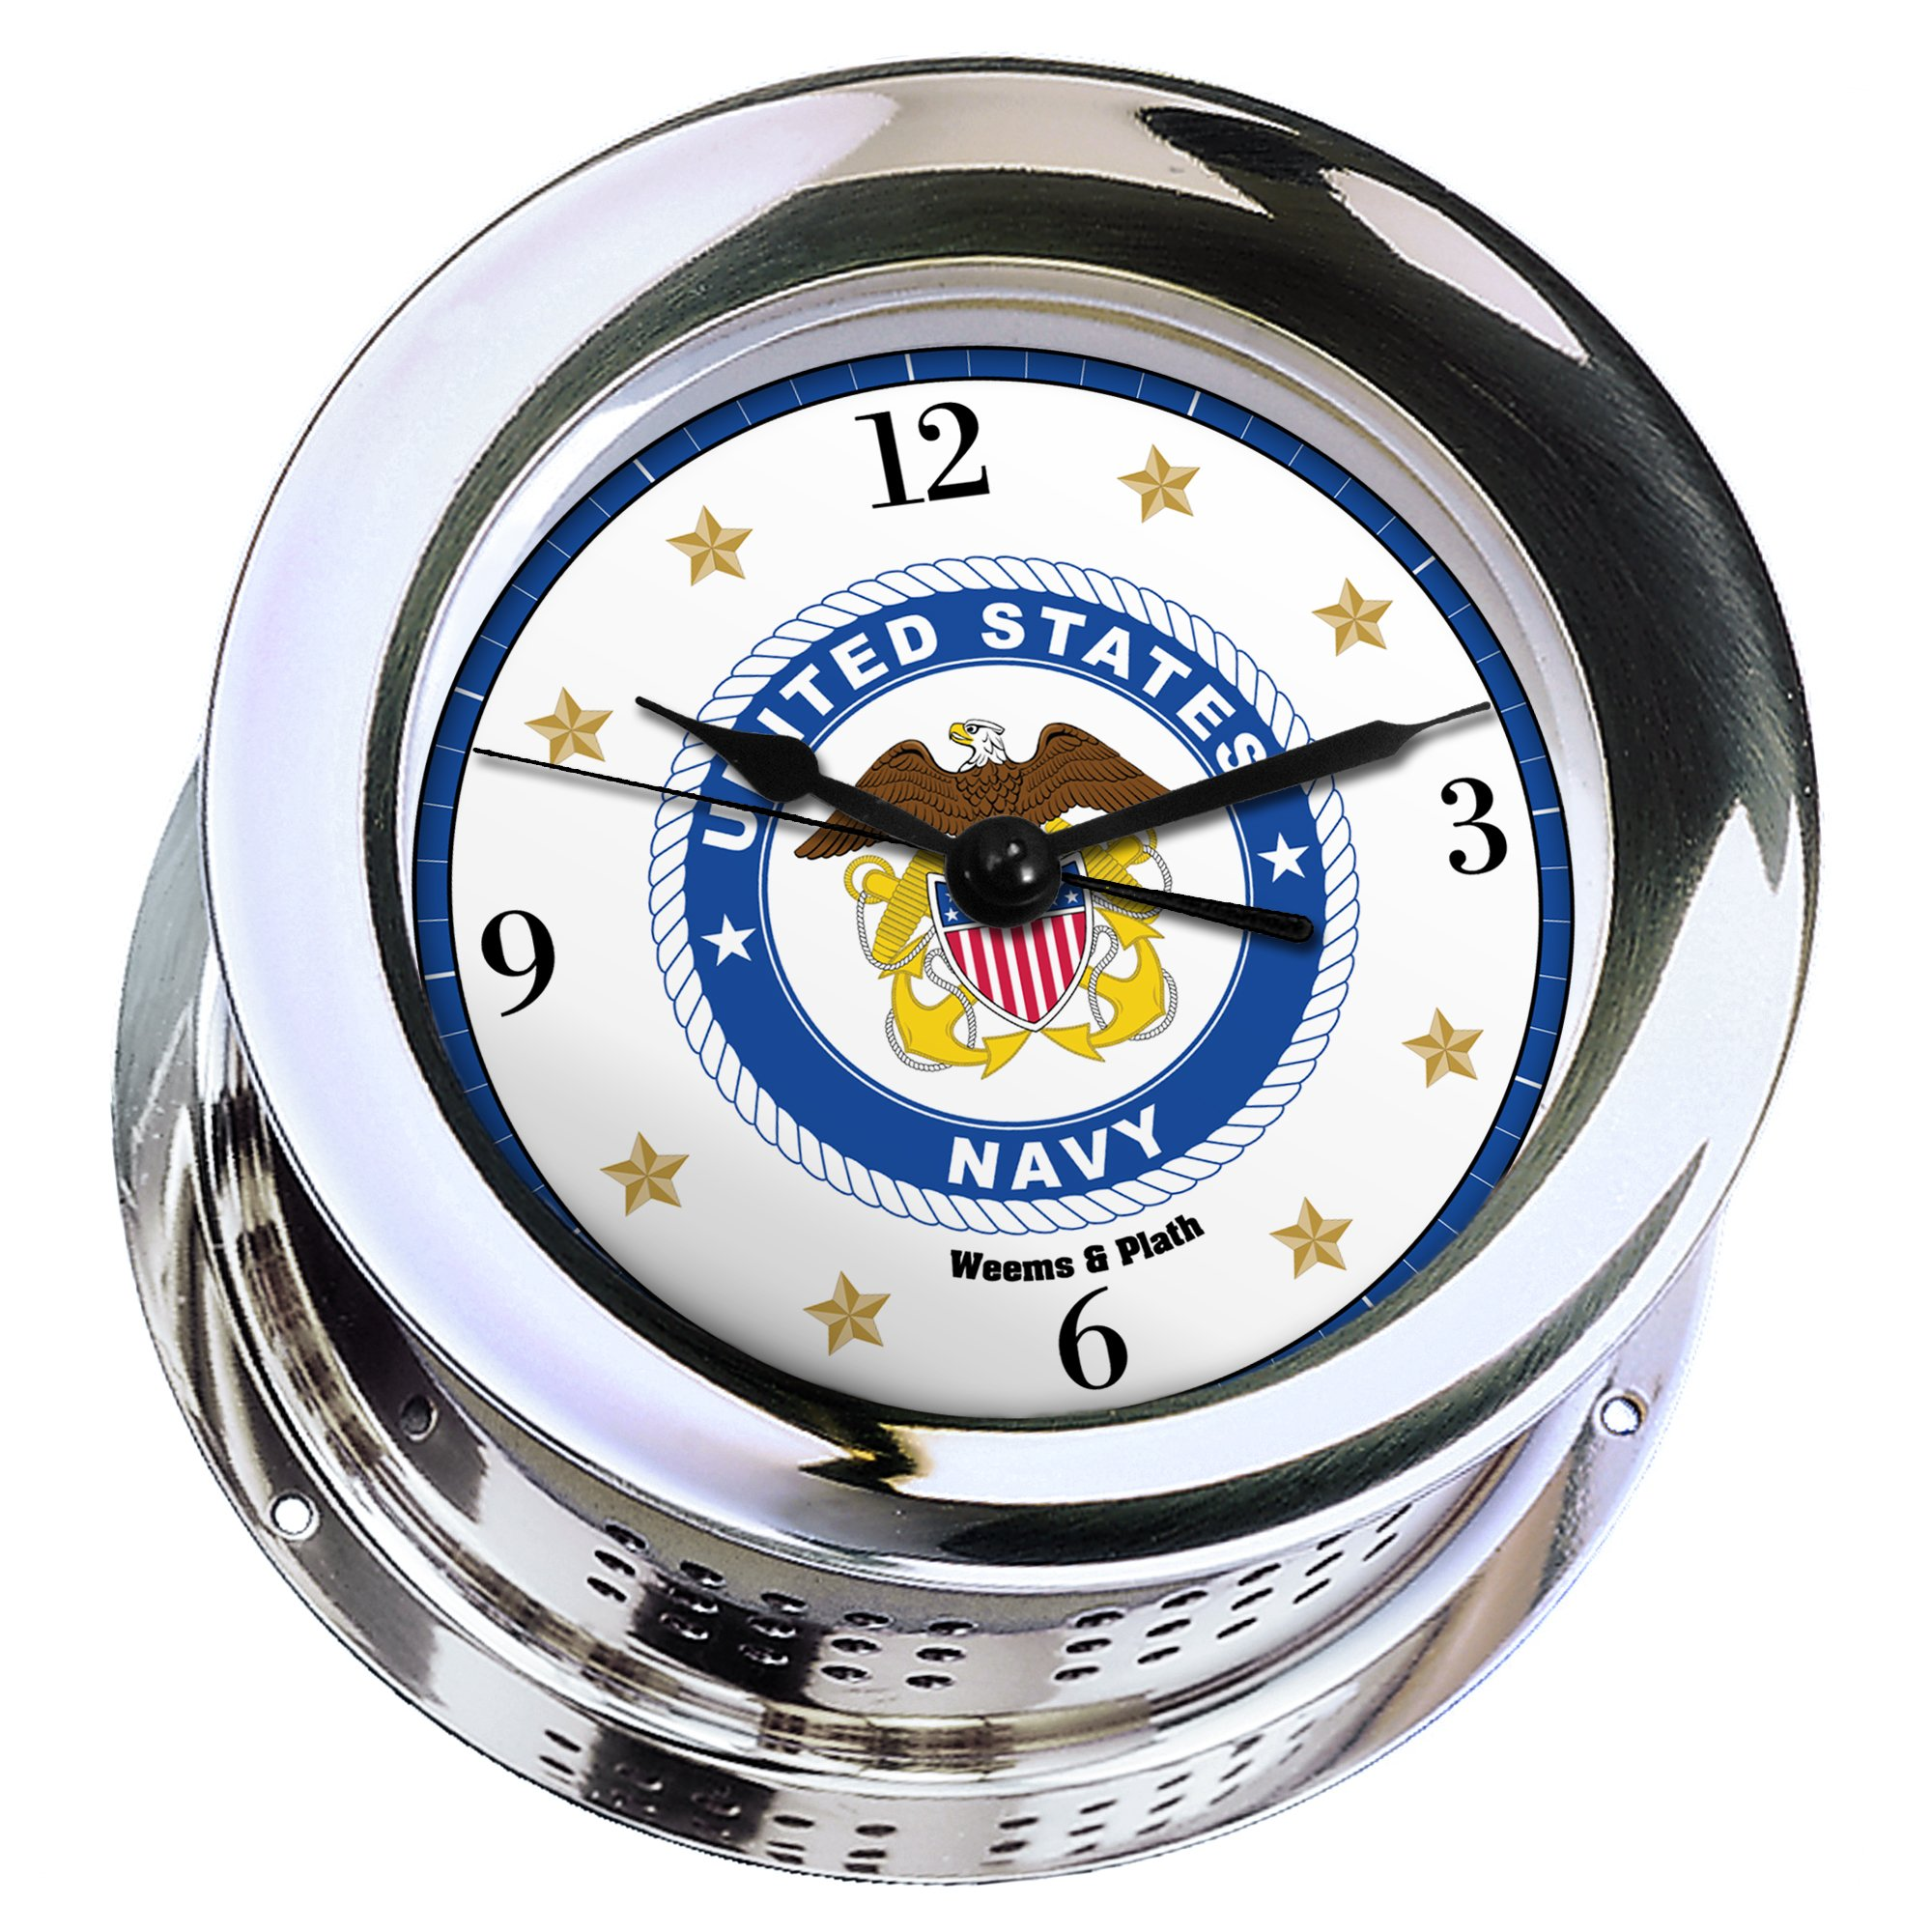 Atlantis Chrome Plated Quartz Ship's Bell Clock #NV220100 01B (#8 Emblem Printed in Full Color with Black Numbers, Gold Stars, and Navy Blue Border)